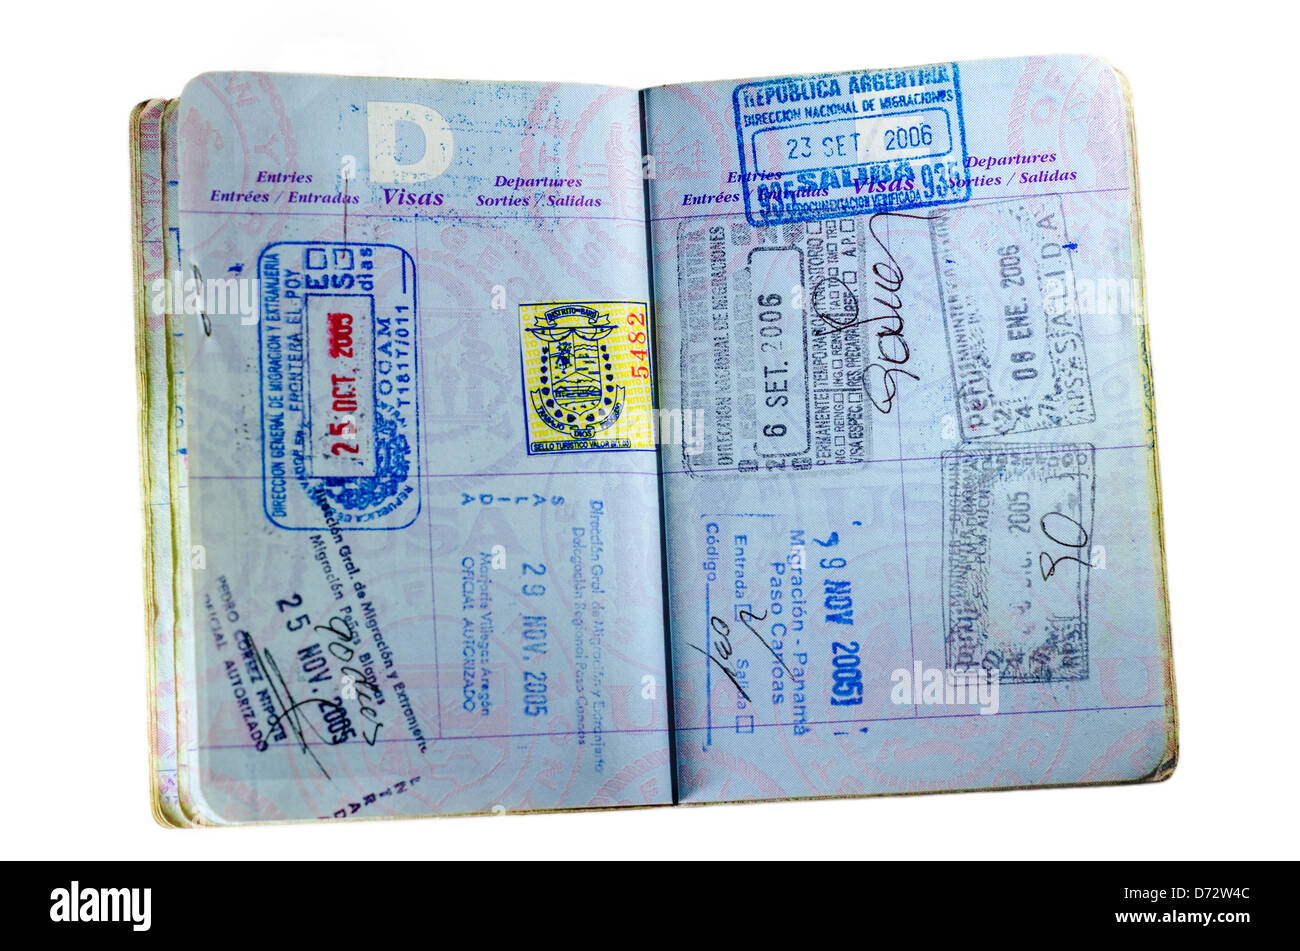 Inside pages and stamps of a well used American passport isolated on white - Stock Image